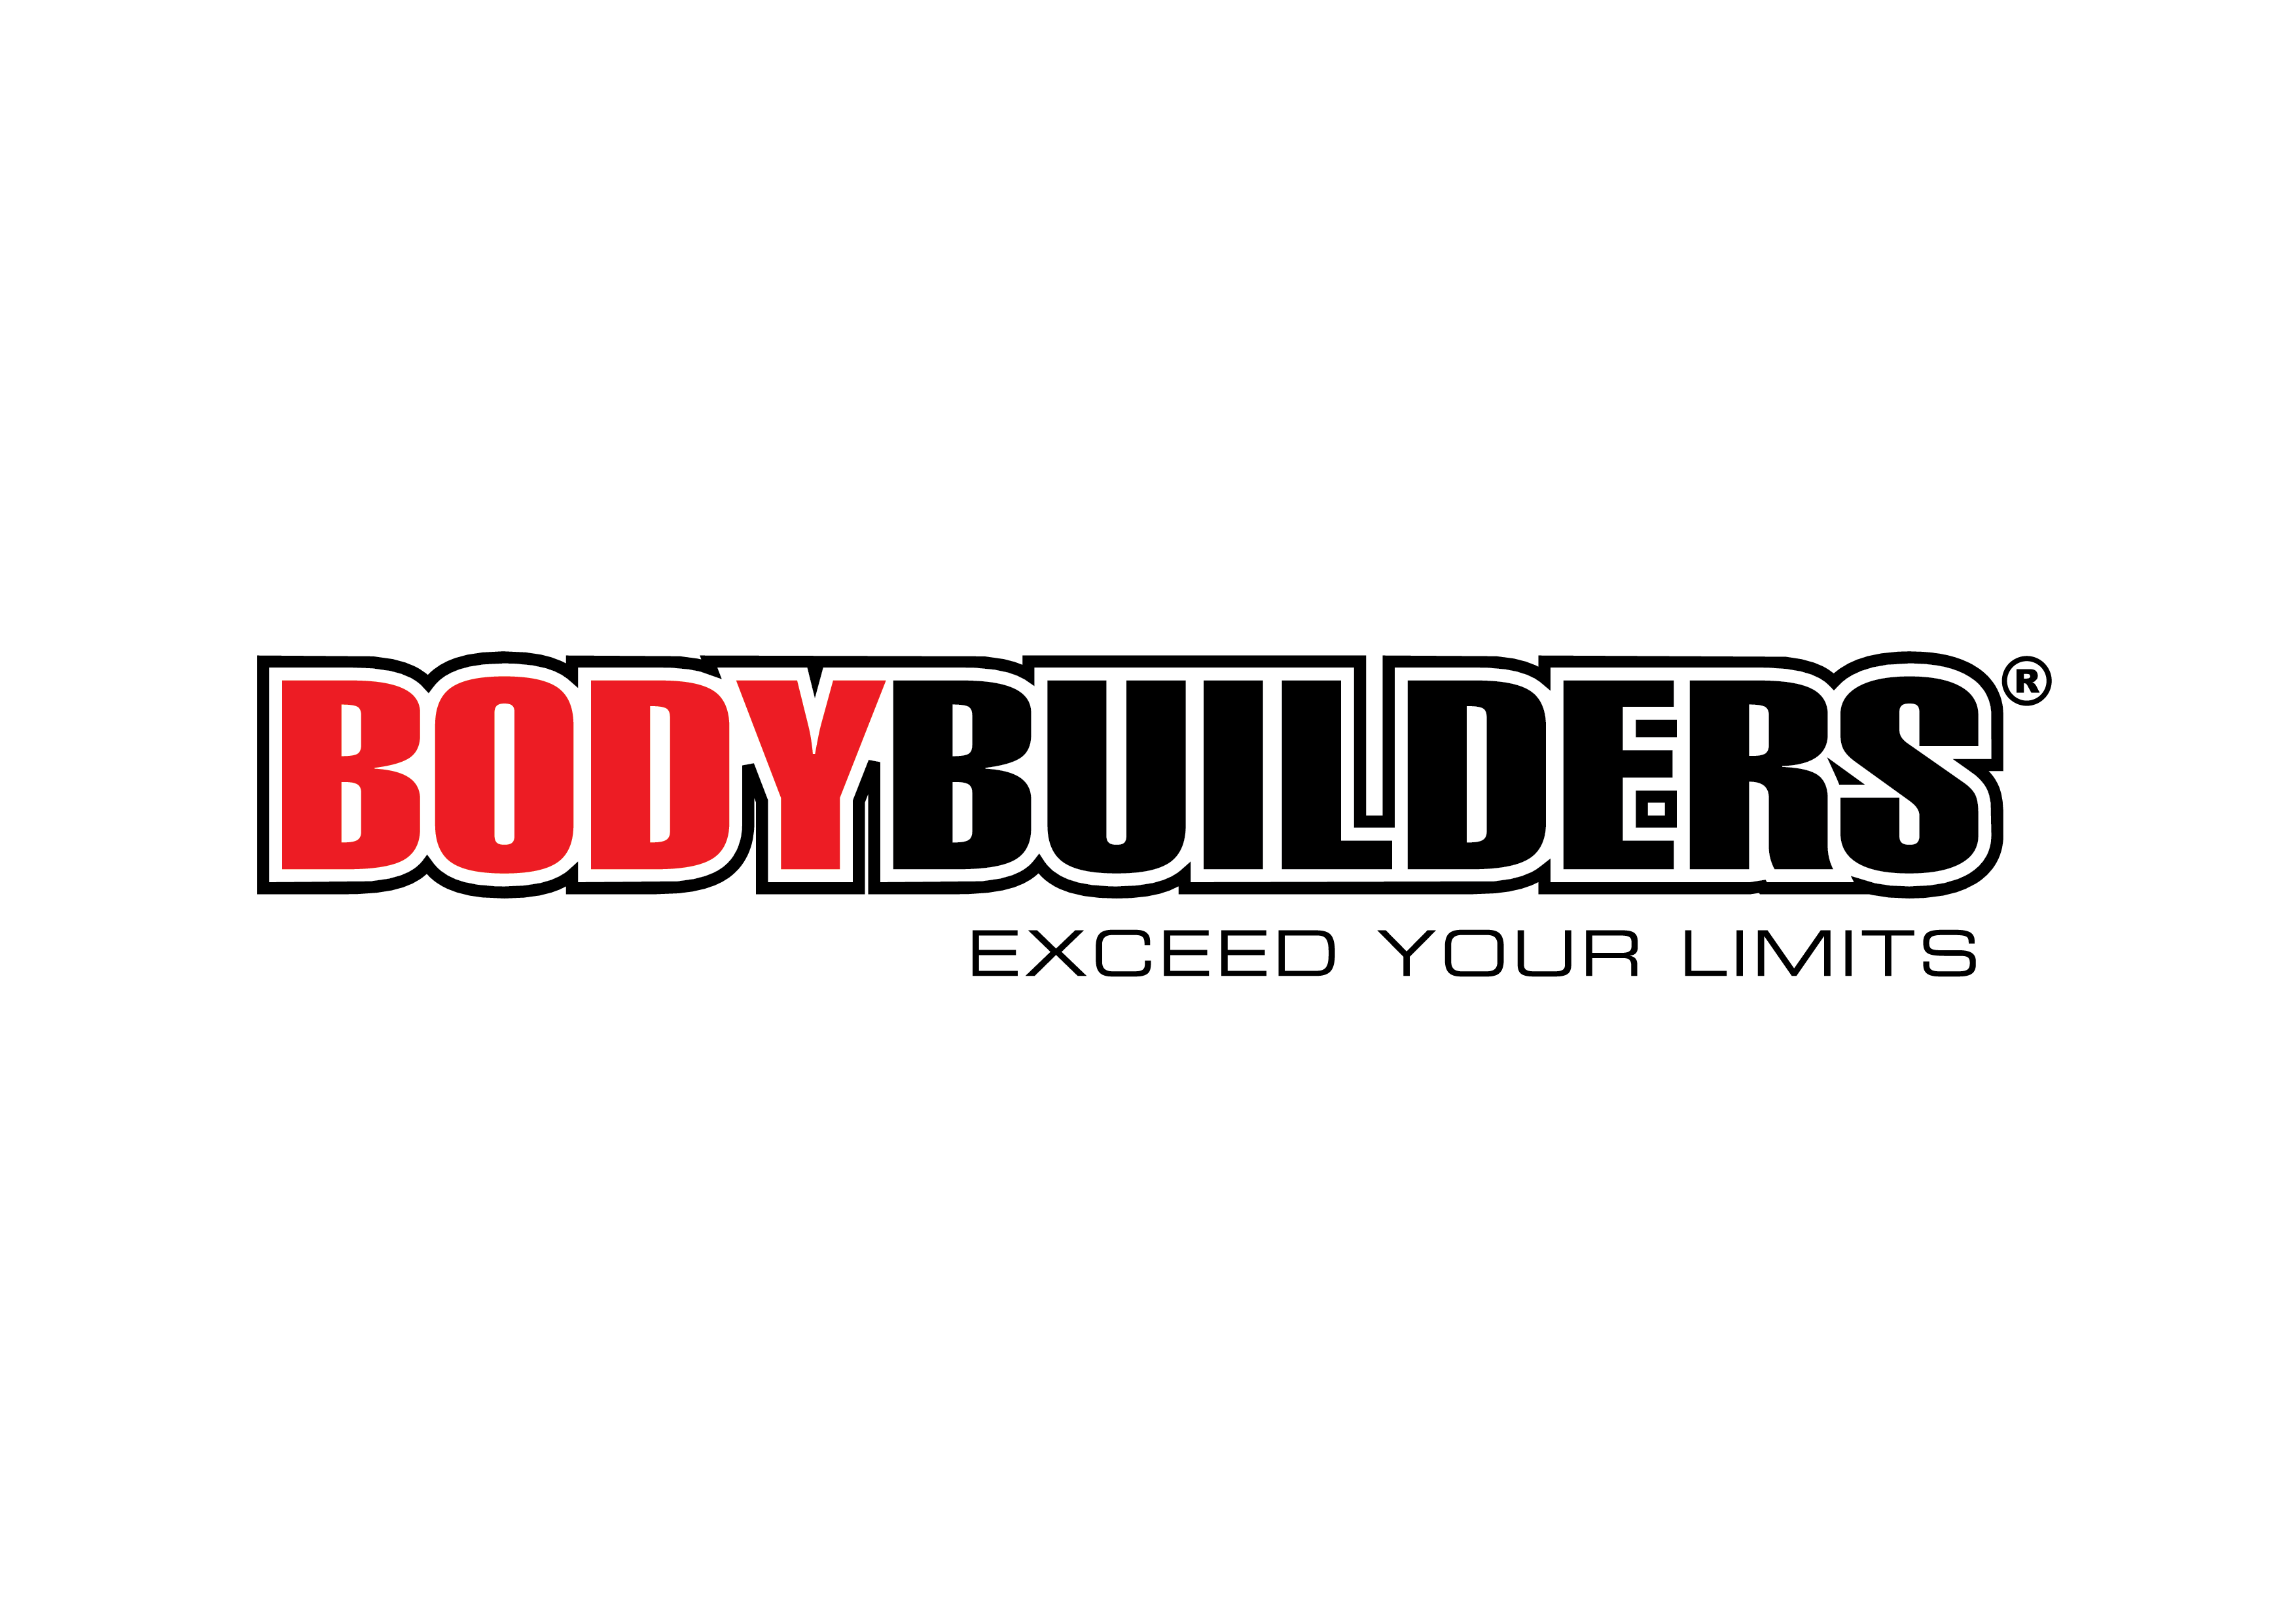 BODYBUILDERS - Logo